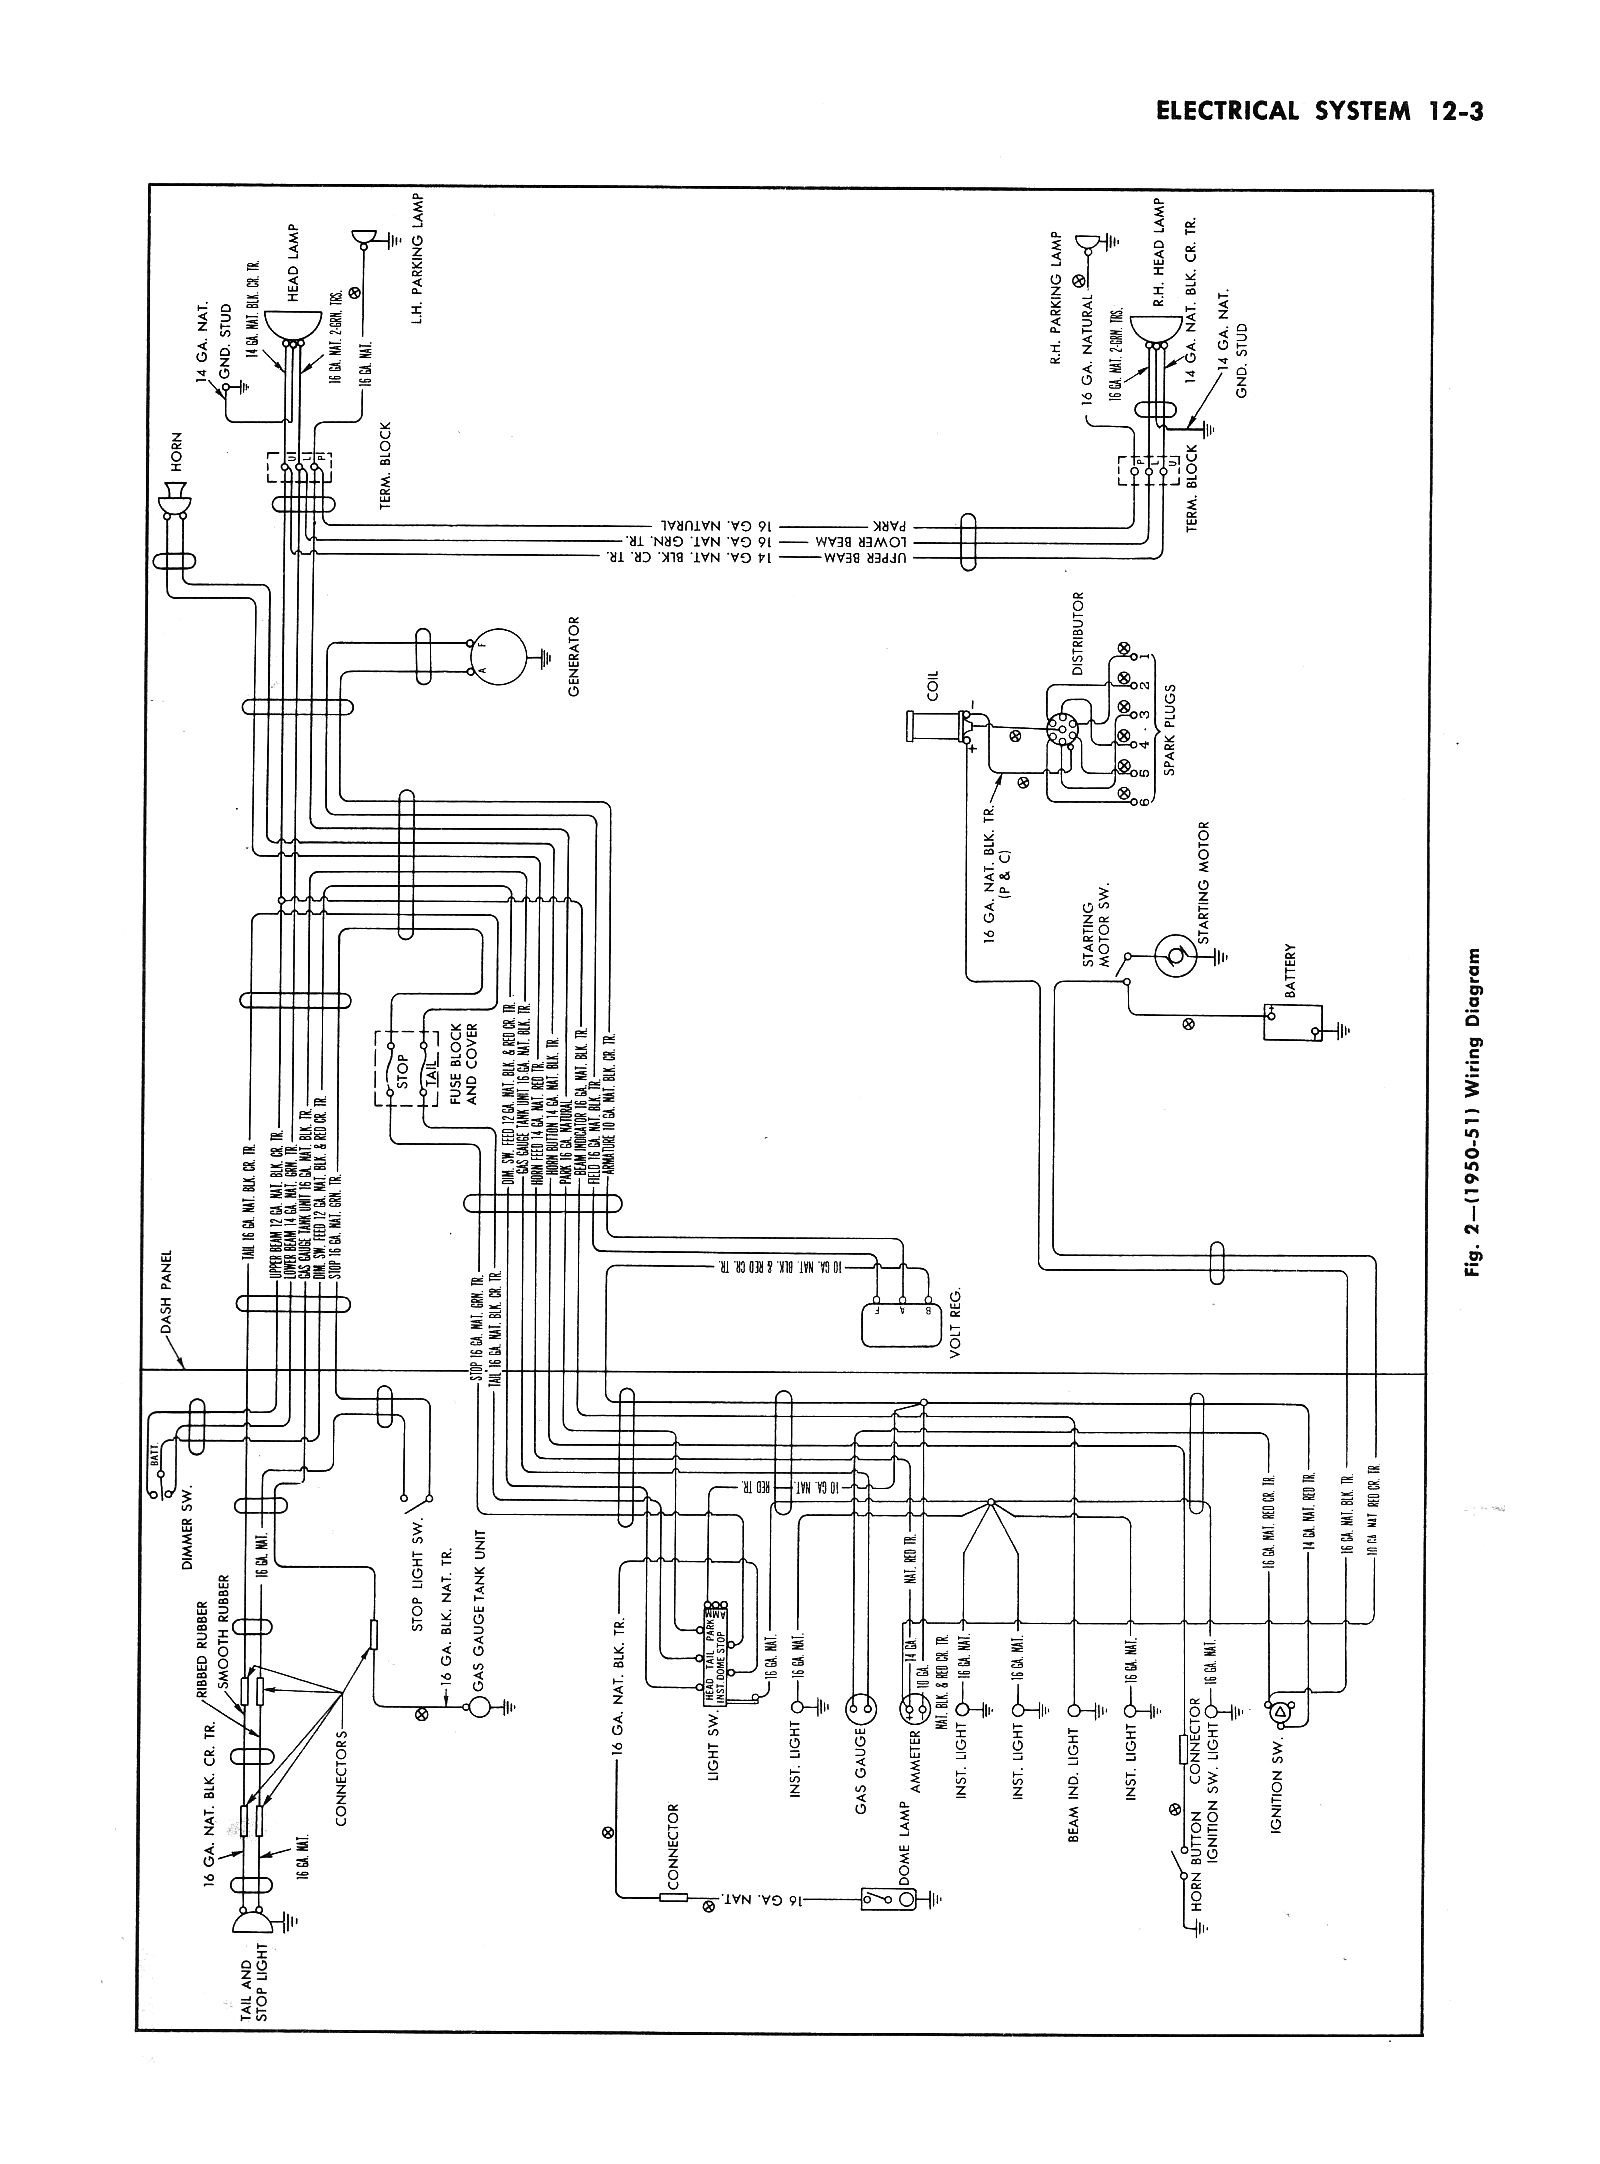 50ctsm1203 chevy wiring diagrams 66 Chevy Headlight Switch Wiring Diagram at reclaimingppi.co